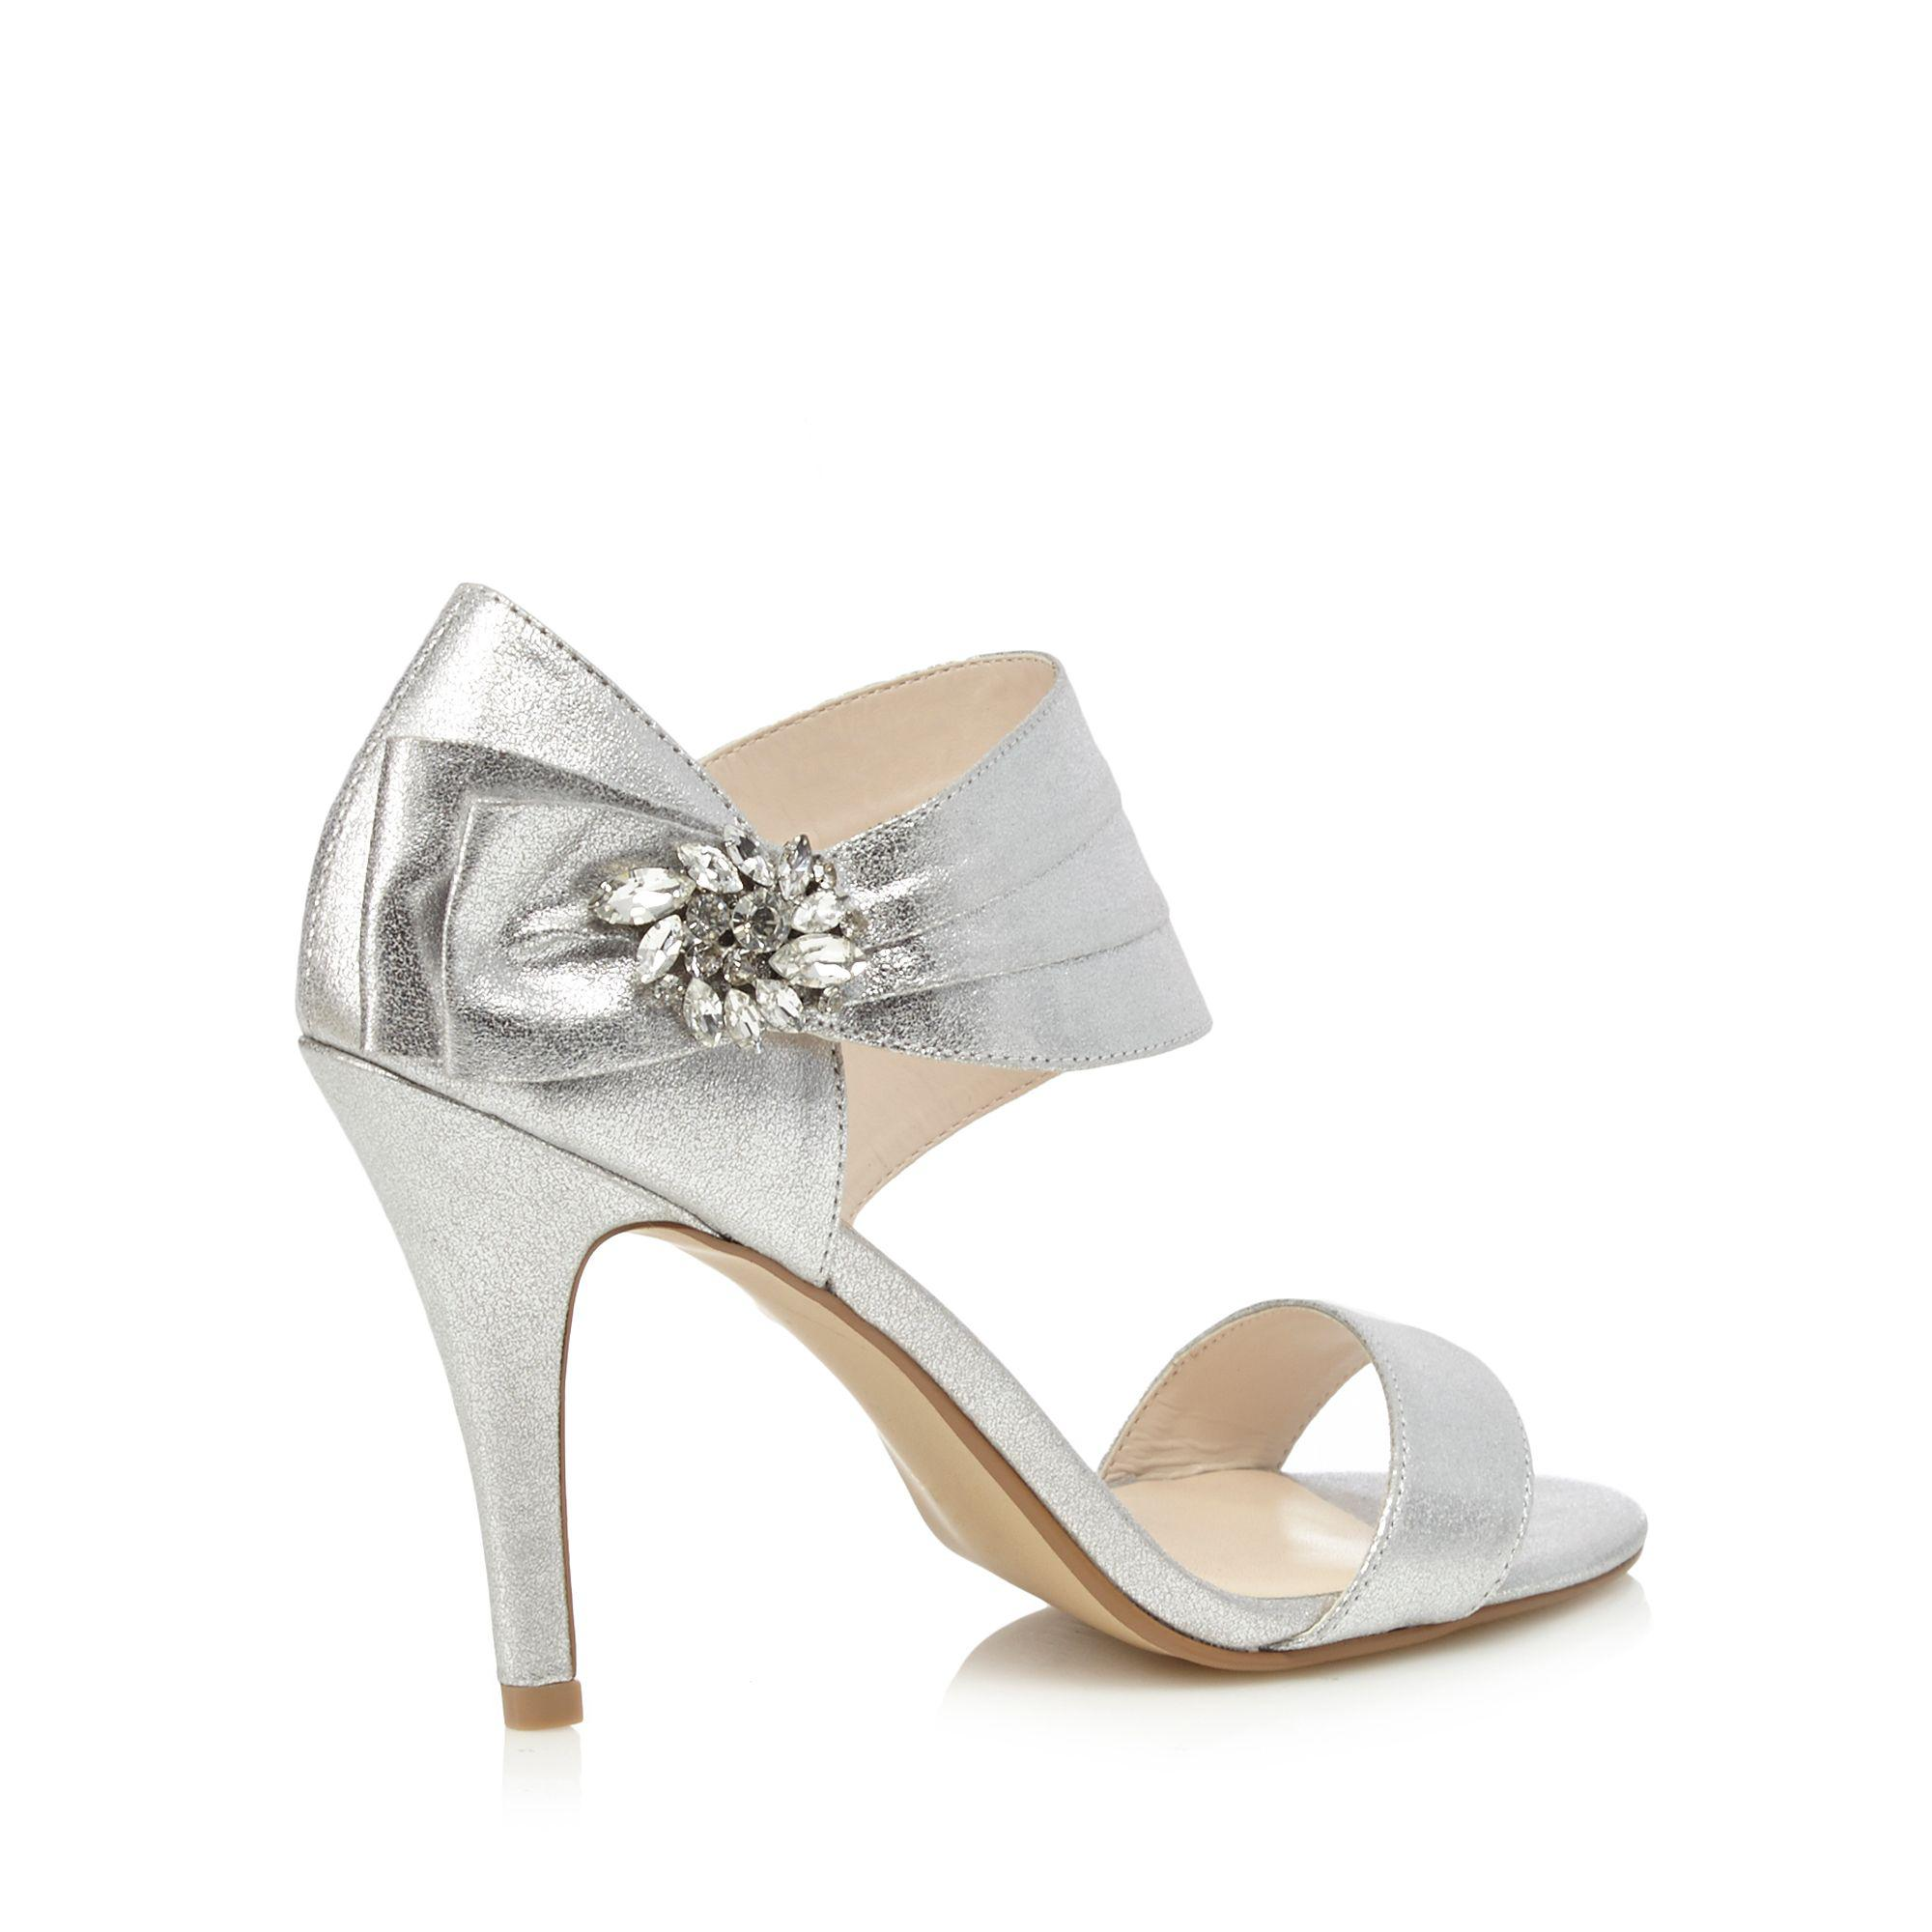 a2a39ad20fb Jenny Packham Silver  polly  High Stiletto Heel Ankle Strap Sandals ...